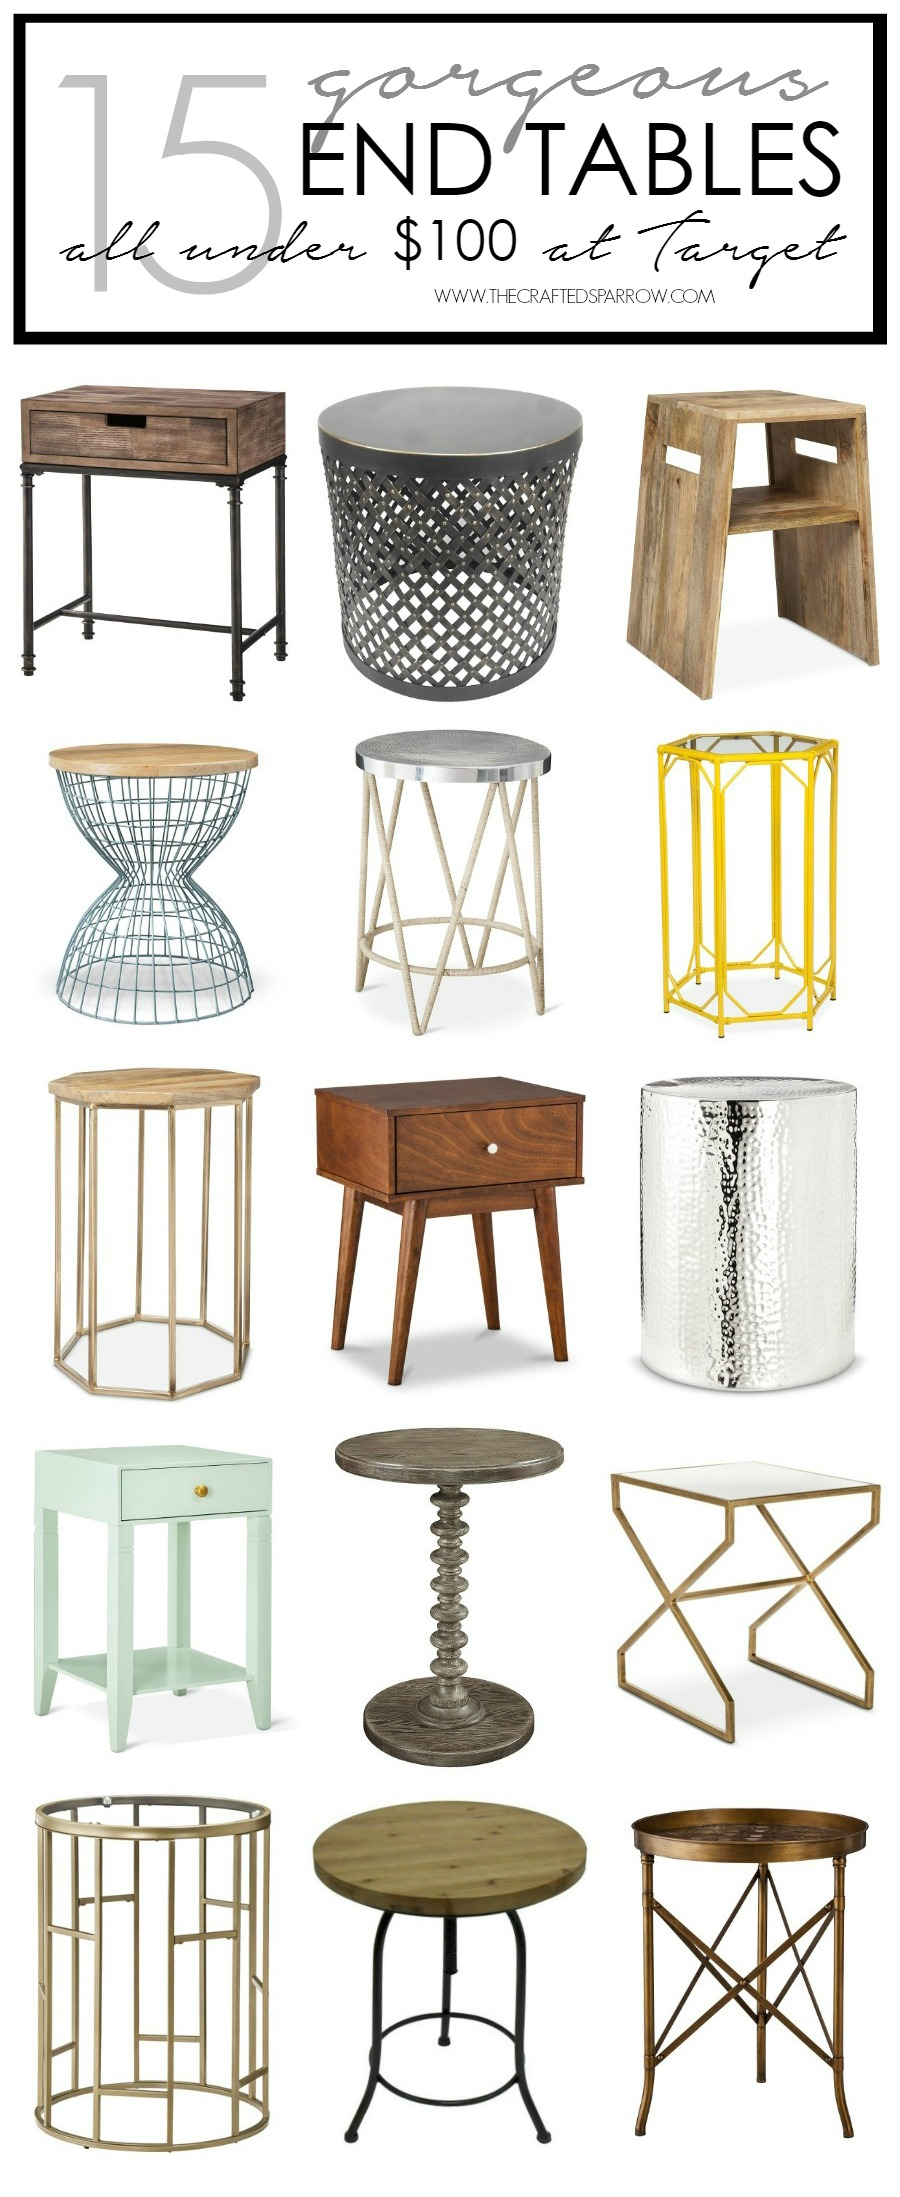 15 Gorgeous End Tables All Under $100 at Target